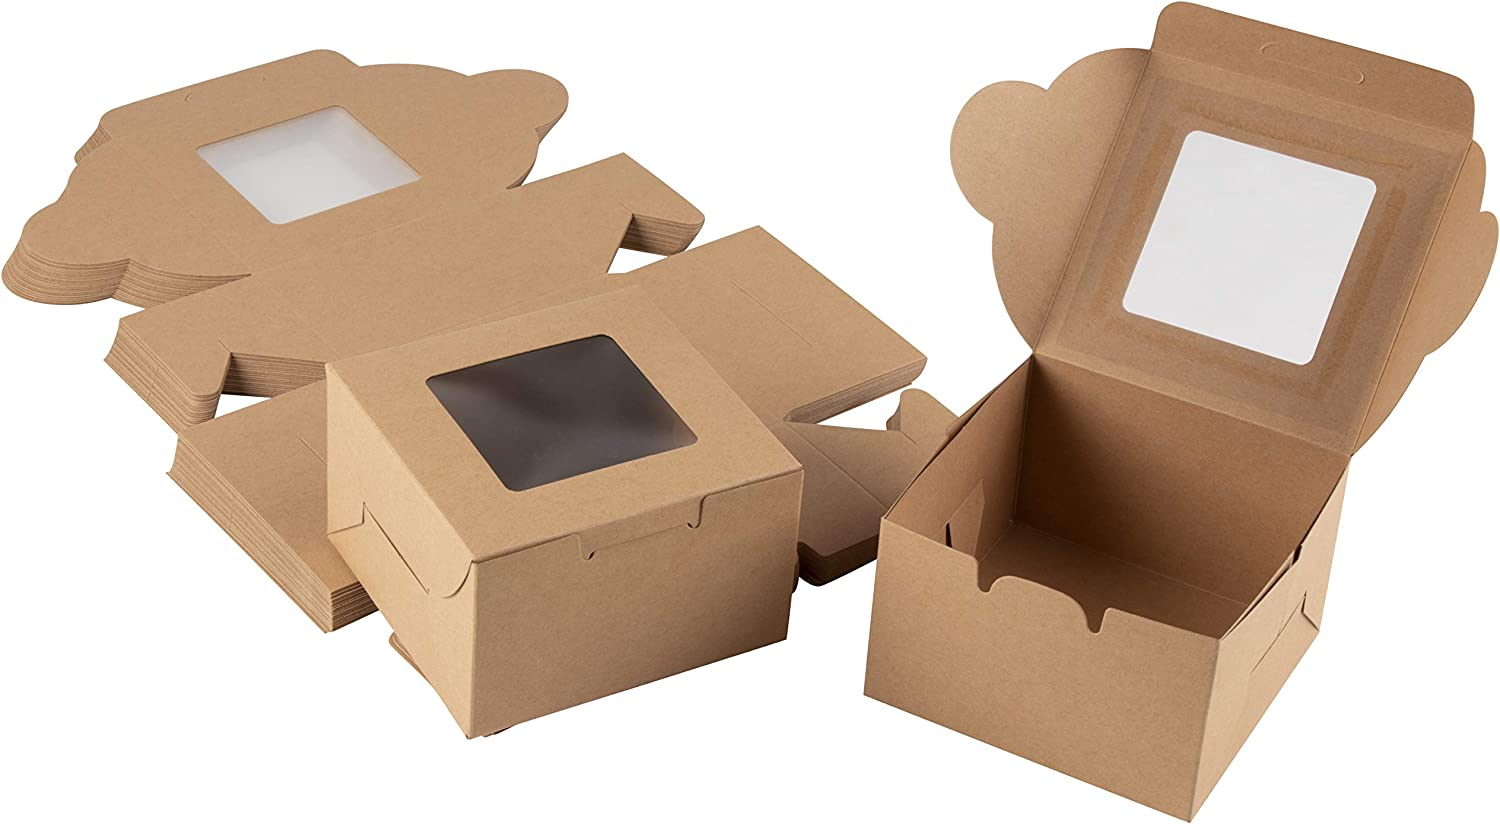 Cake Box – 25 Pack Disposable Pastry Box, Kraft Paper Bakery Box with Display Window for Mini Cake, Cupcake, Cookie, Dessert, Donuts, Pastry - 4 x 4 x 2.3 Inches, Brown